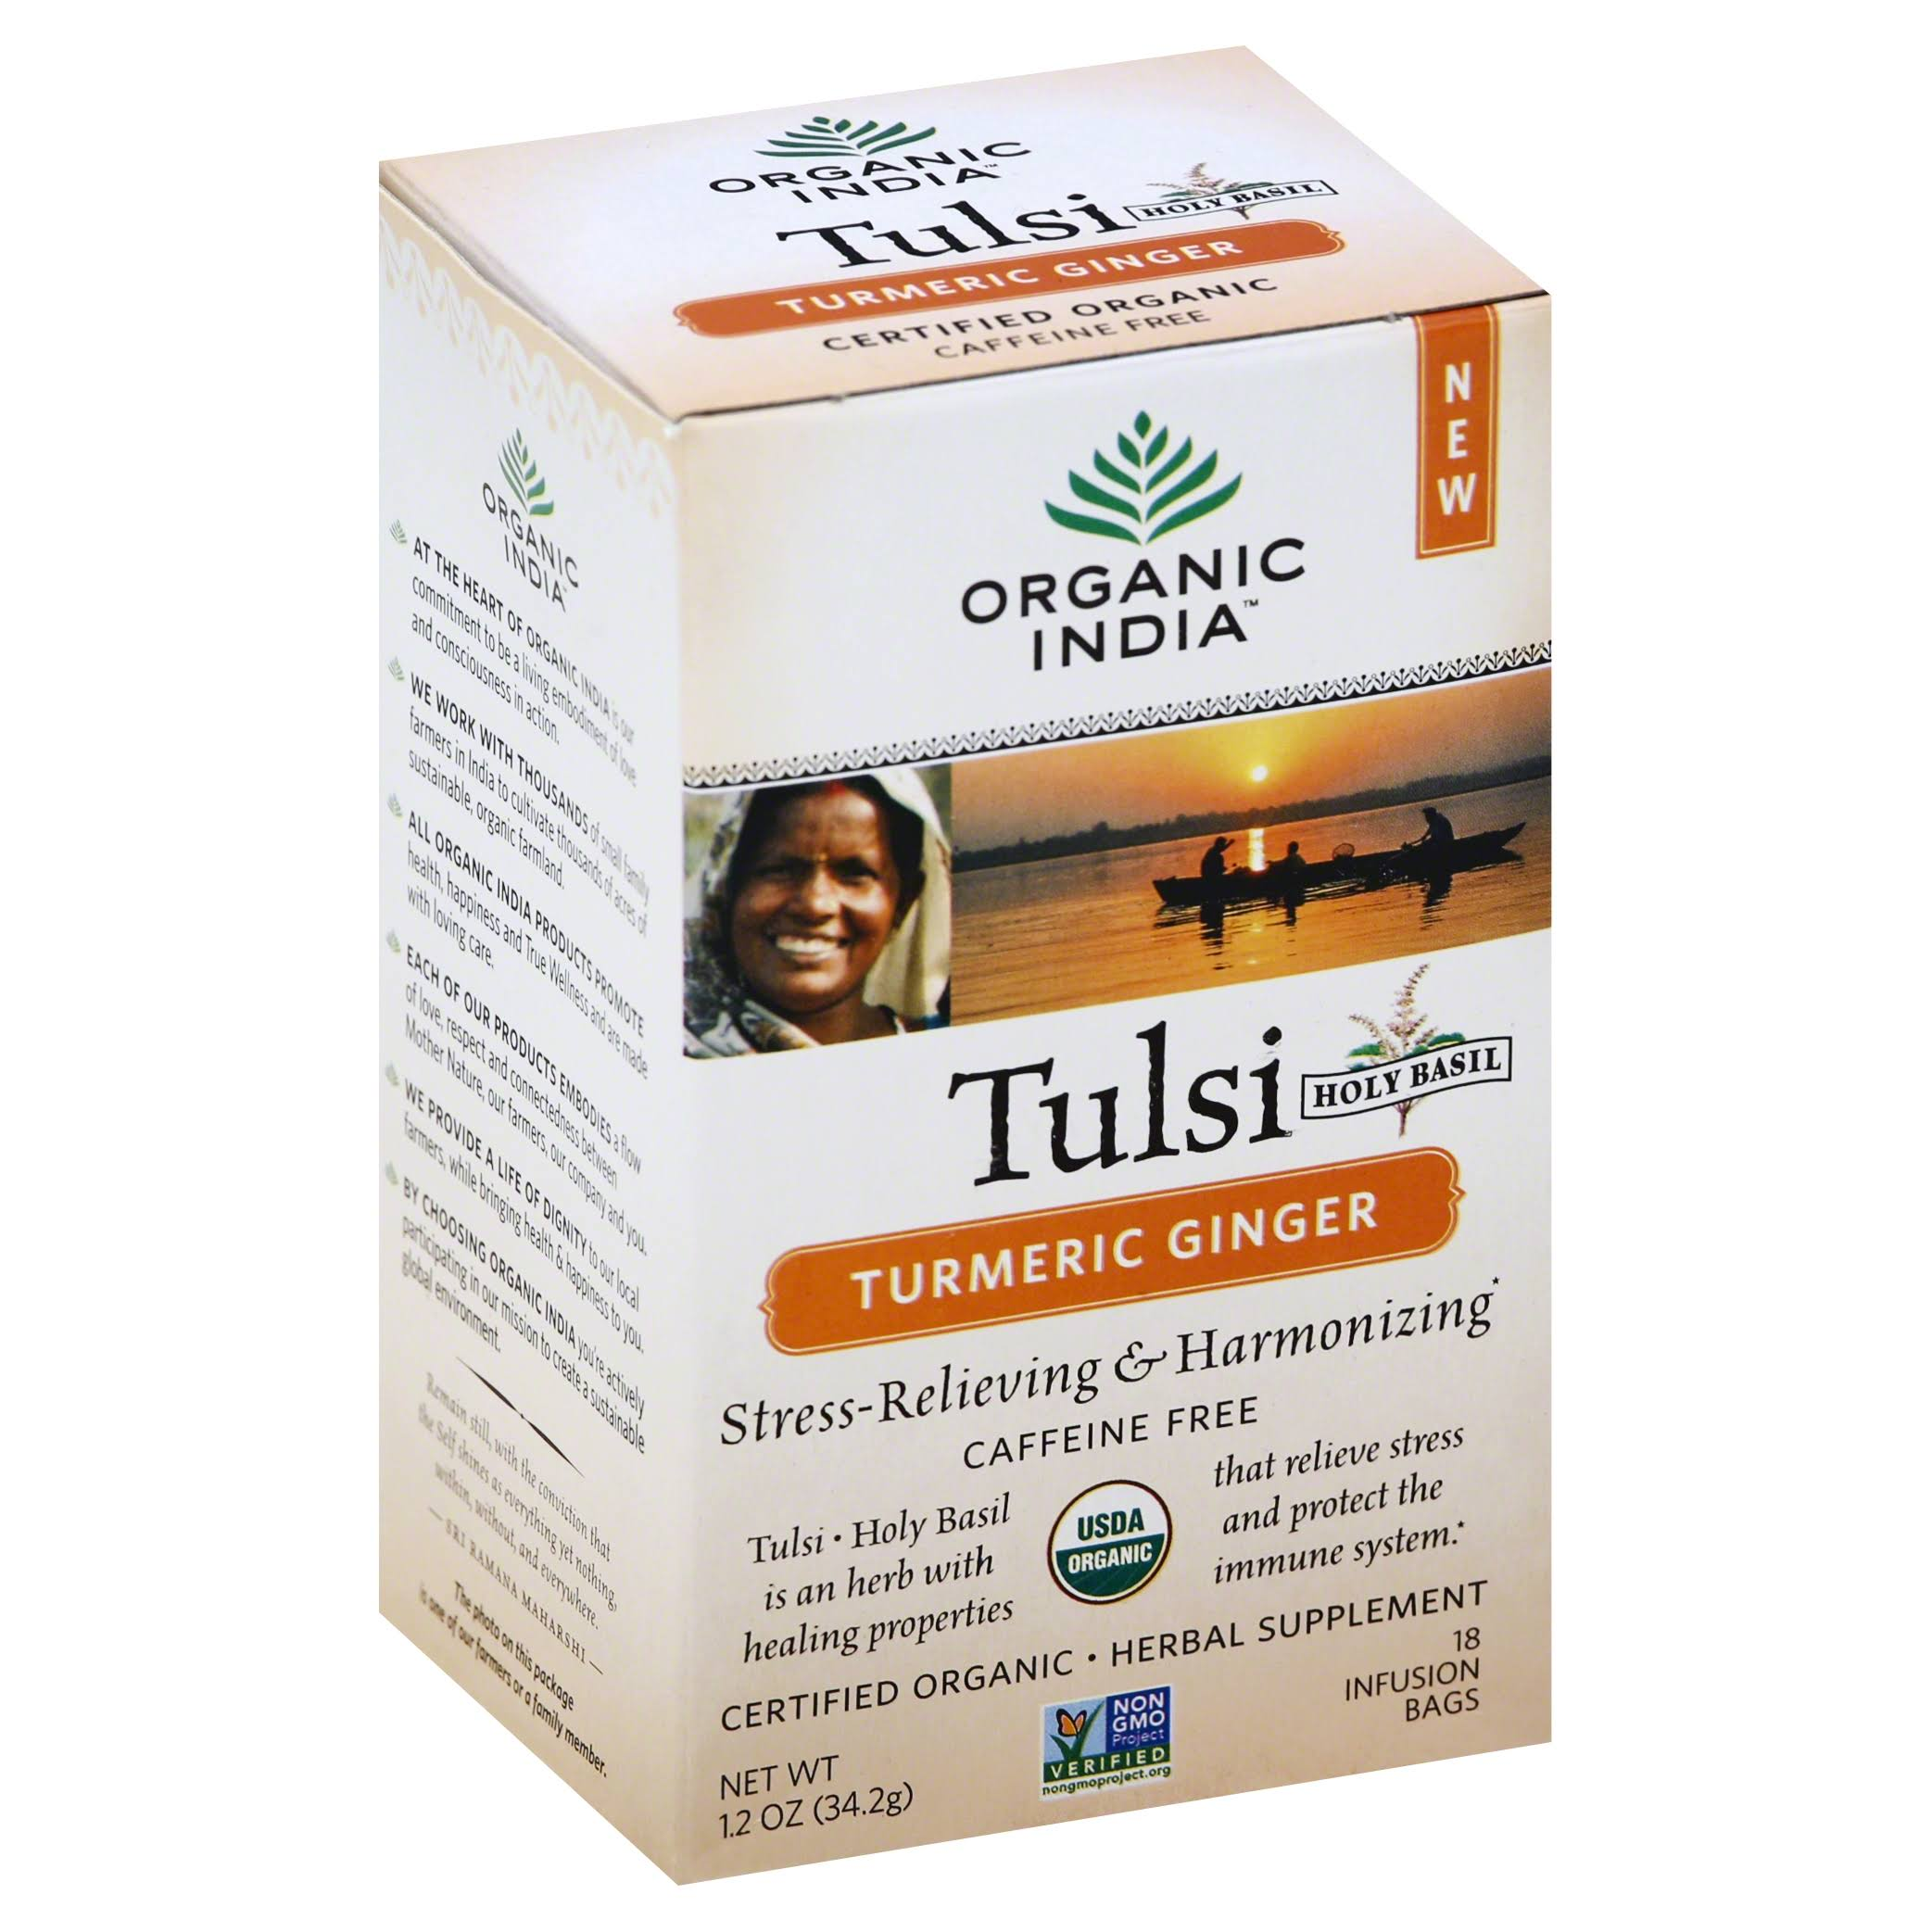 Organic India Tulsi Turmeric Ginger Tea - 18 Infusion Bags, 12oz